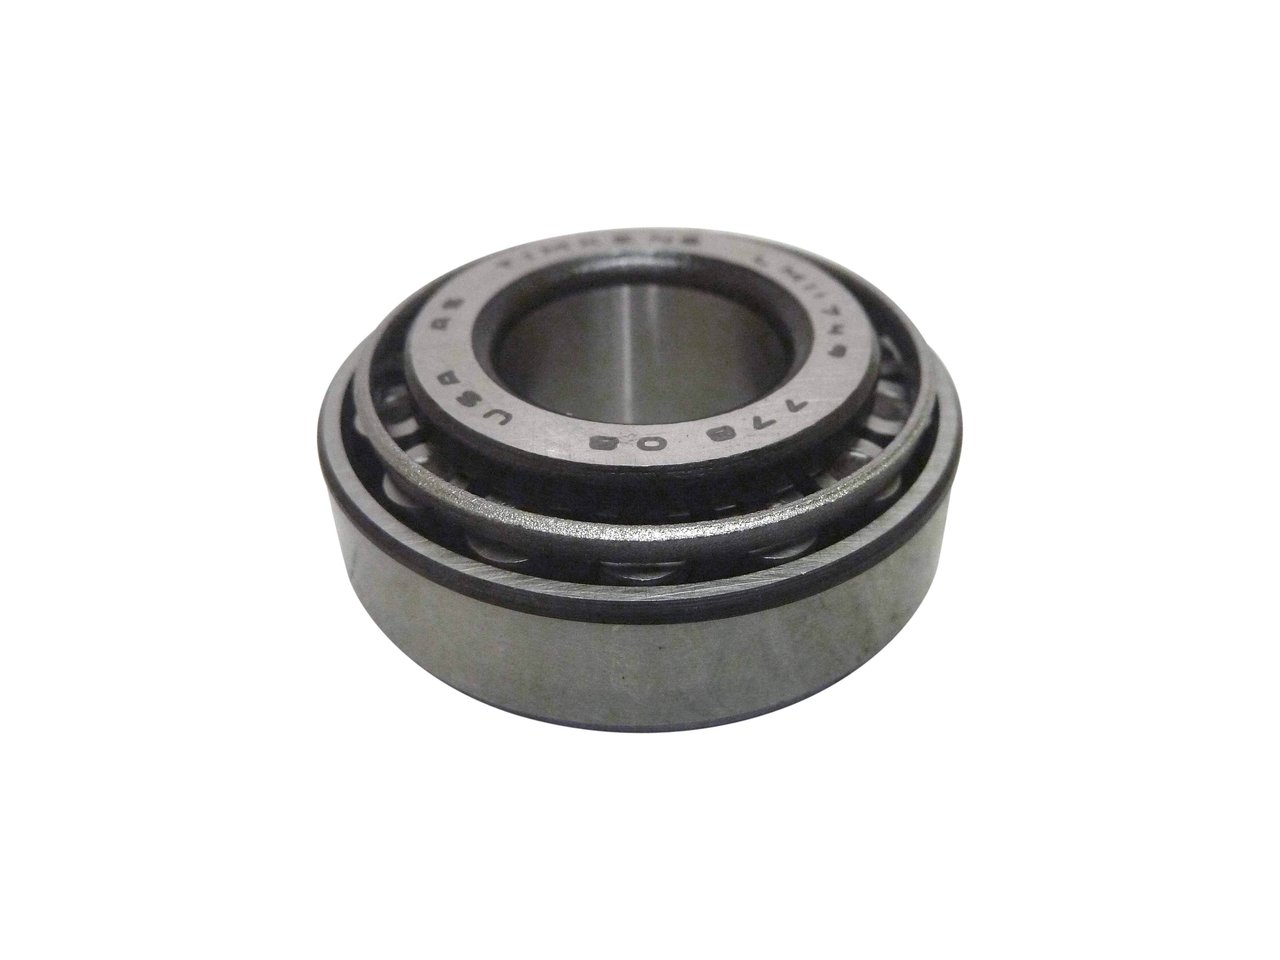 Gearbox Input Bearing For Land Rover Lt77 Lt77s R380 Gearboxes